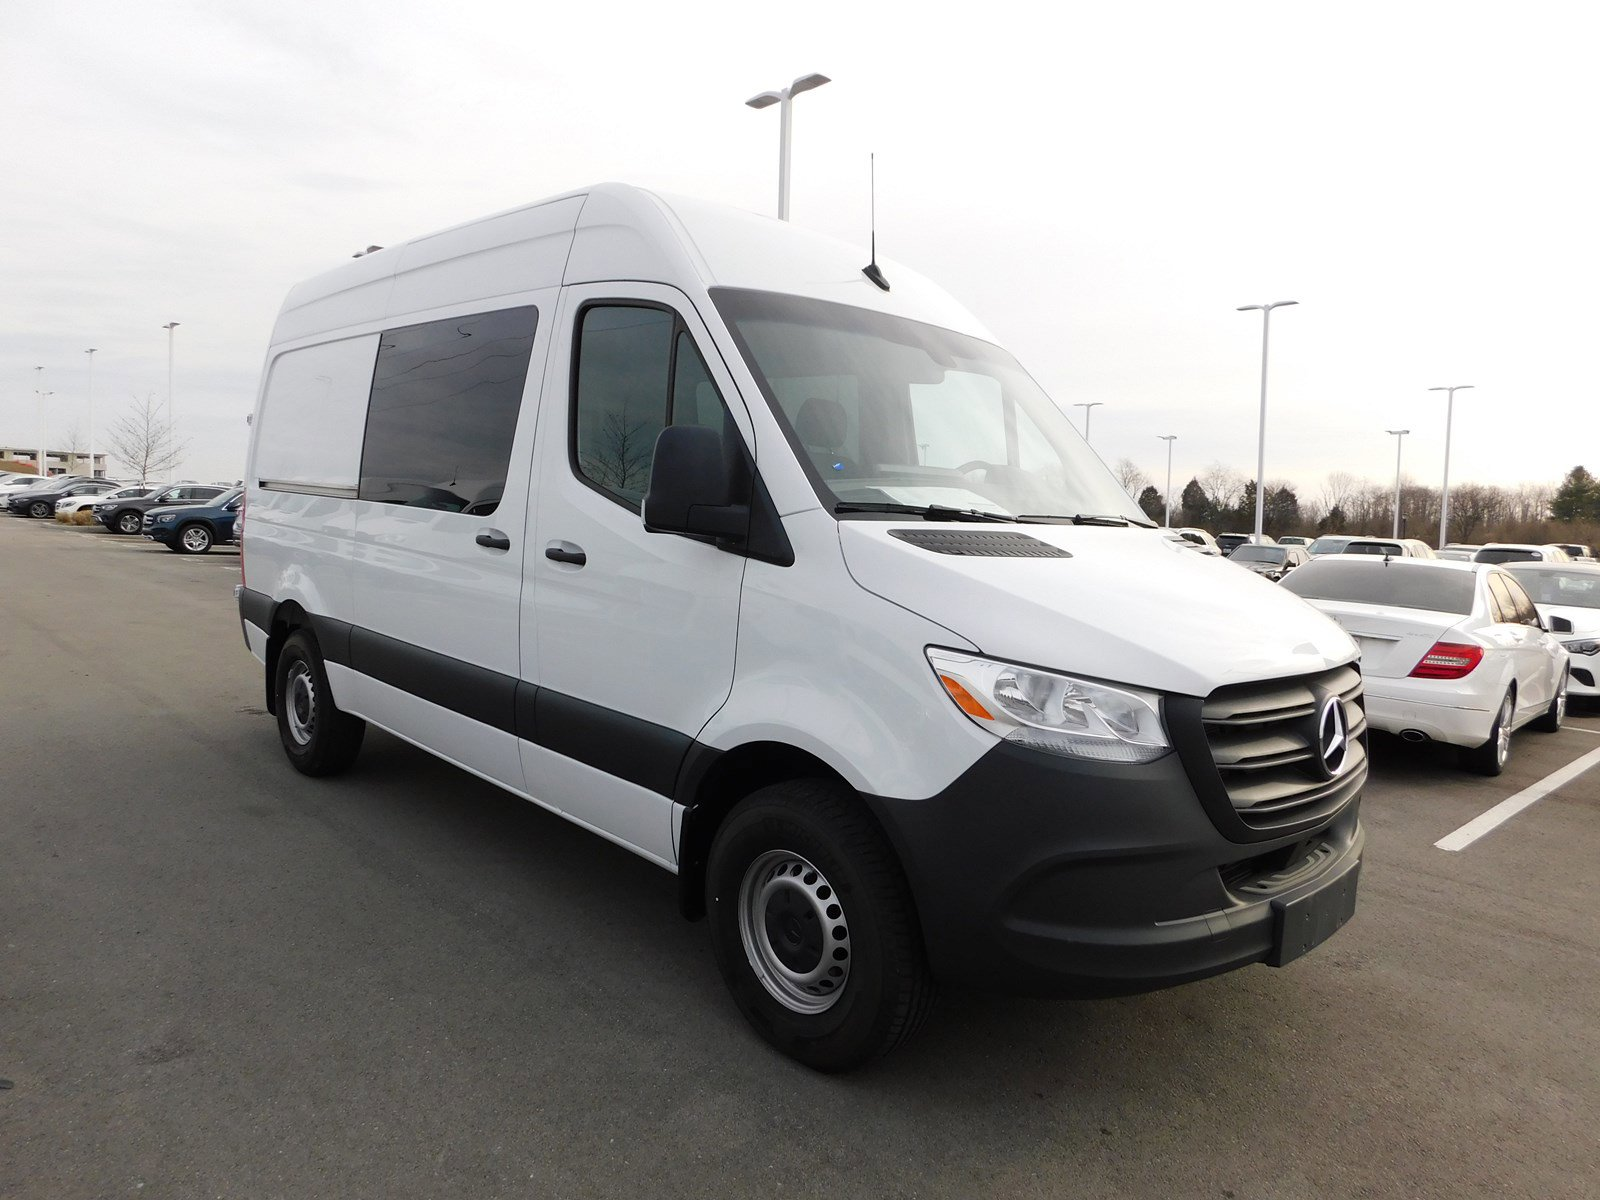 New 2019 Mercedes-Benz Sprinter Crew Van 2500 144 WB HR